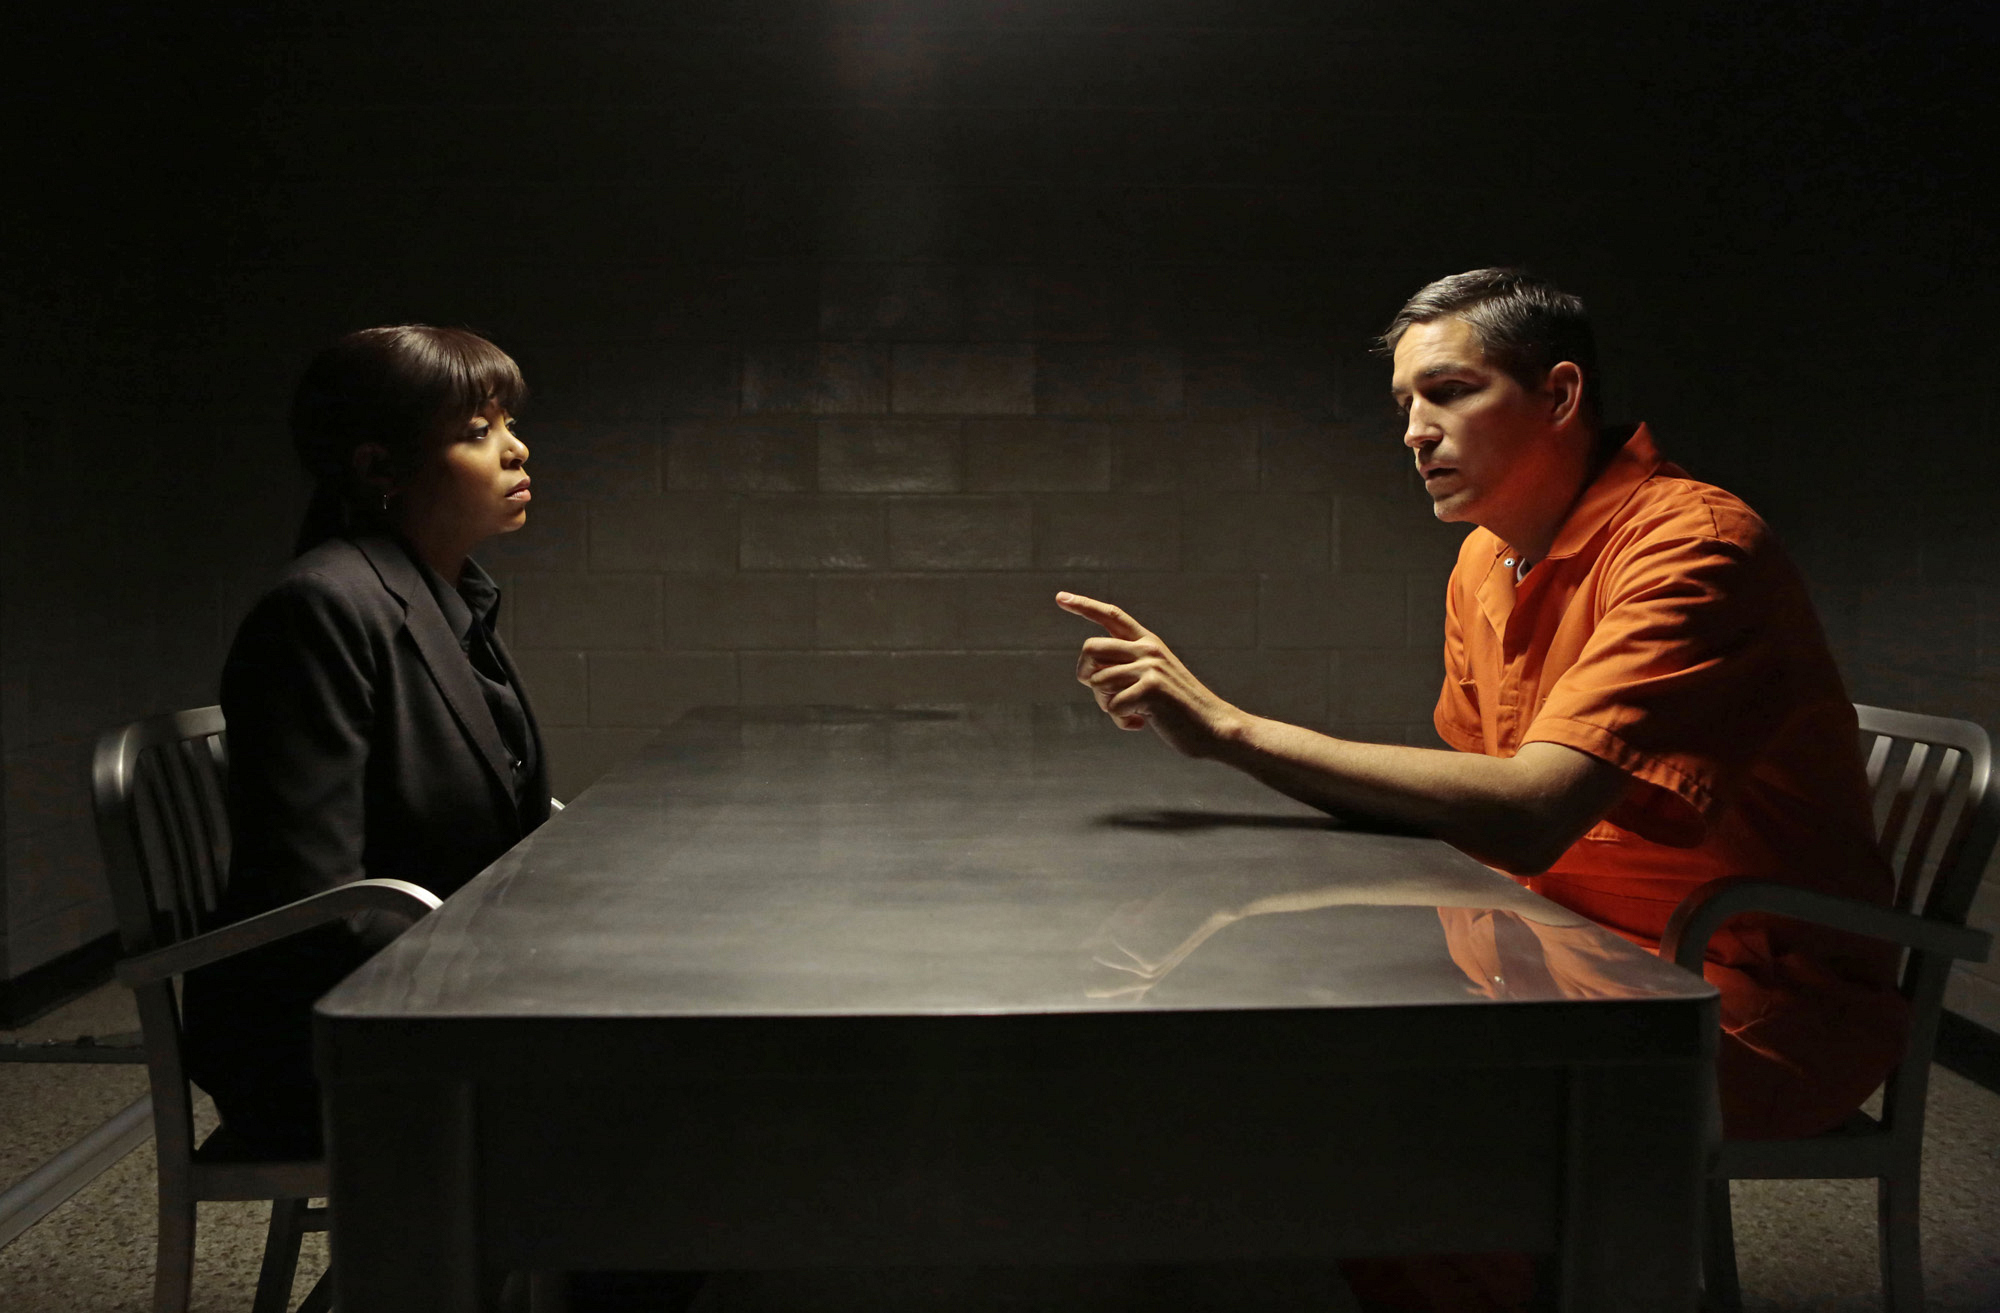 Carter Interrogates Reese